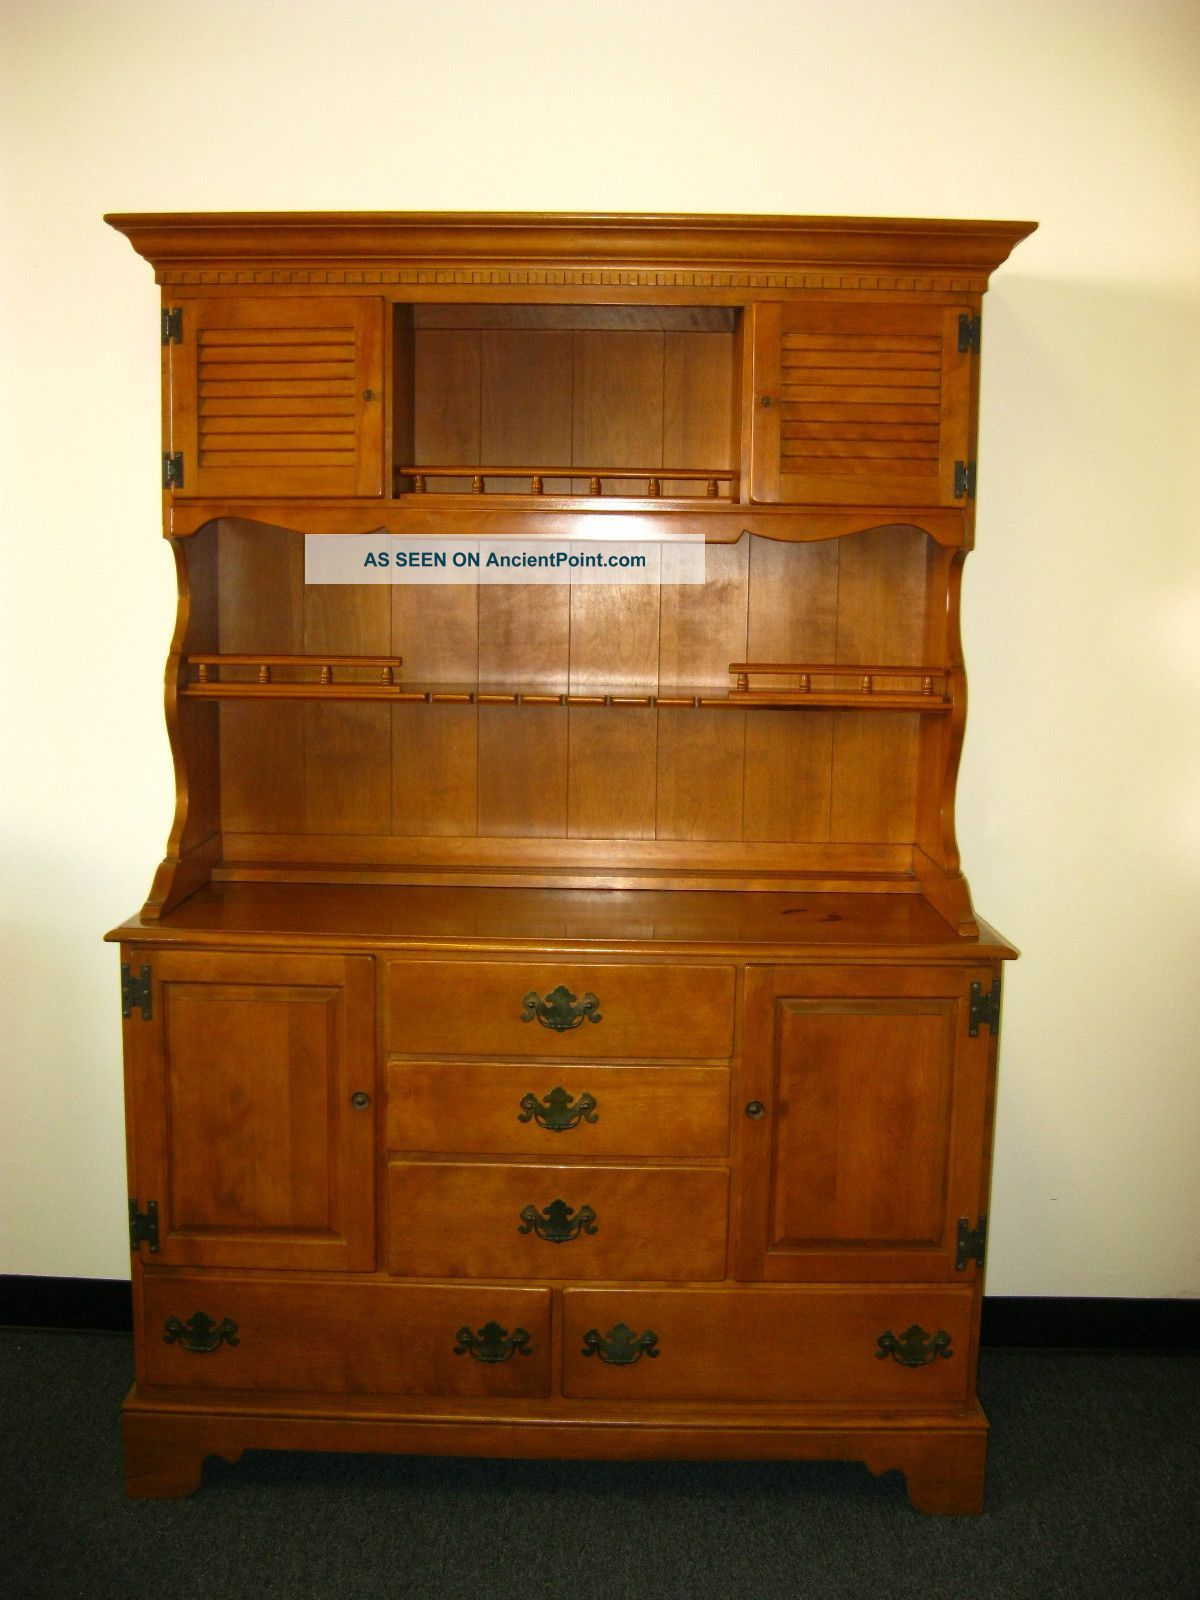 Vintage Ethan Allen Maple Wood Hutch Cupboard Cabinet Buffet Colonial Style Post 1950 Photo